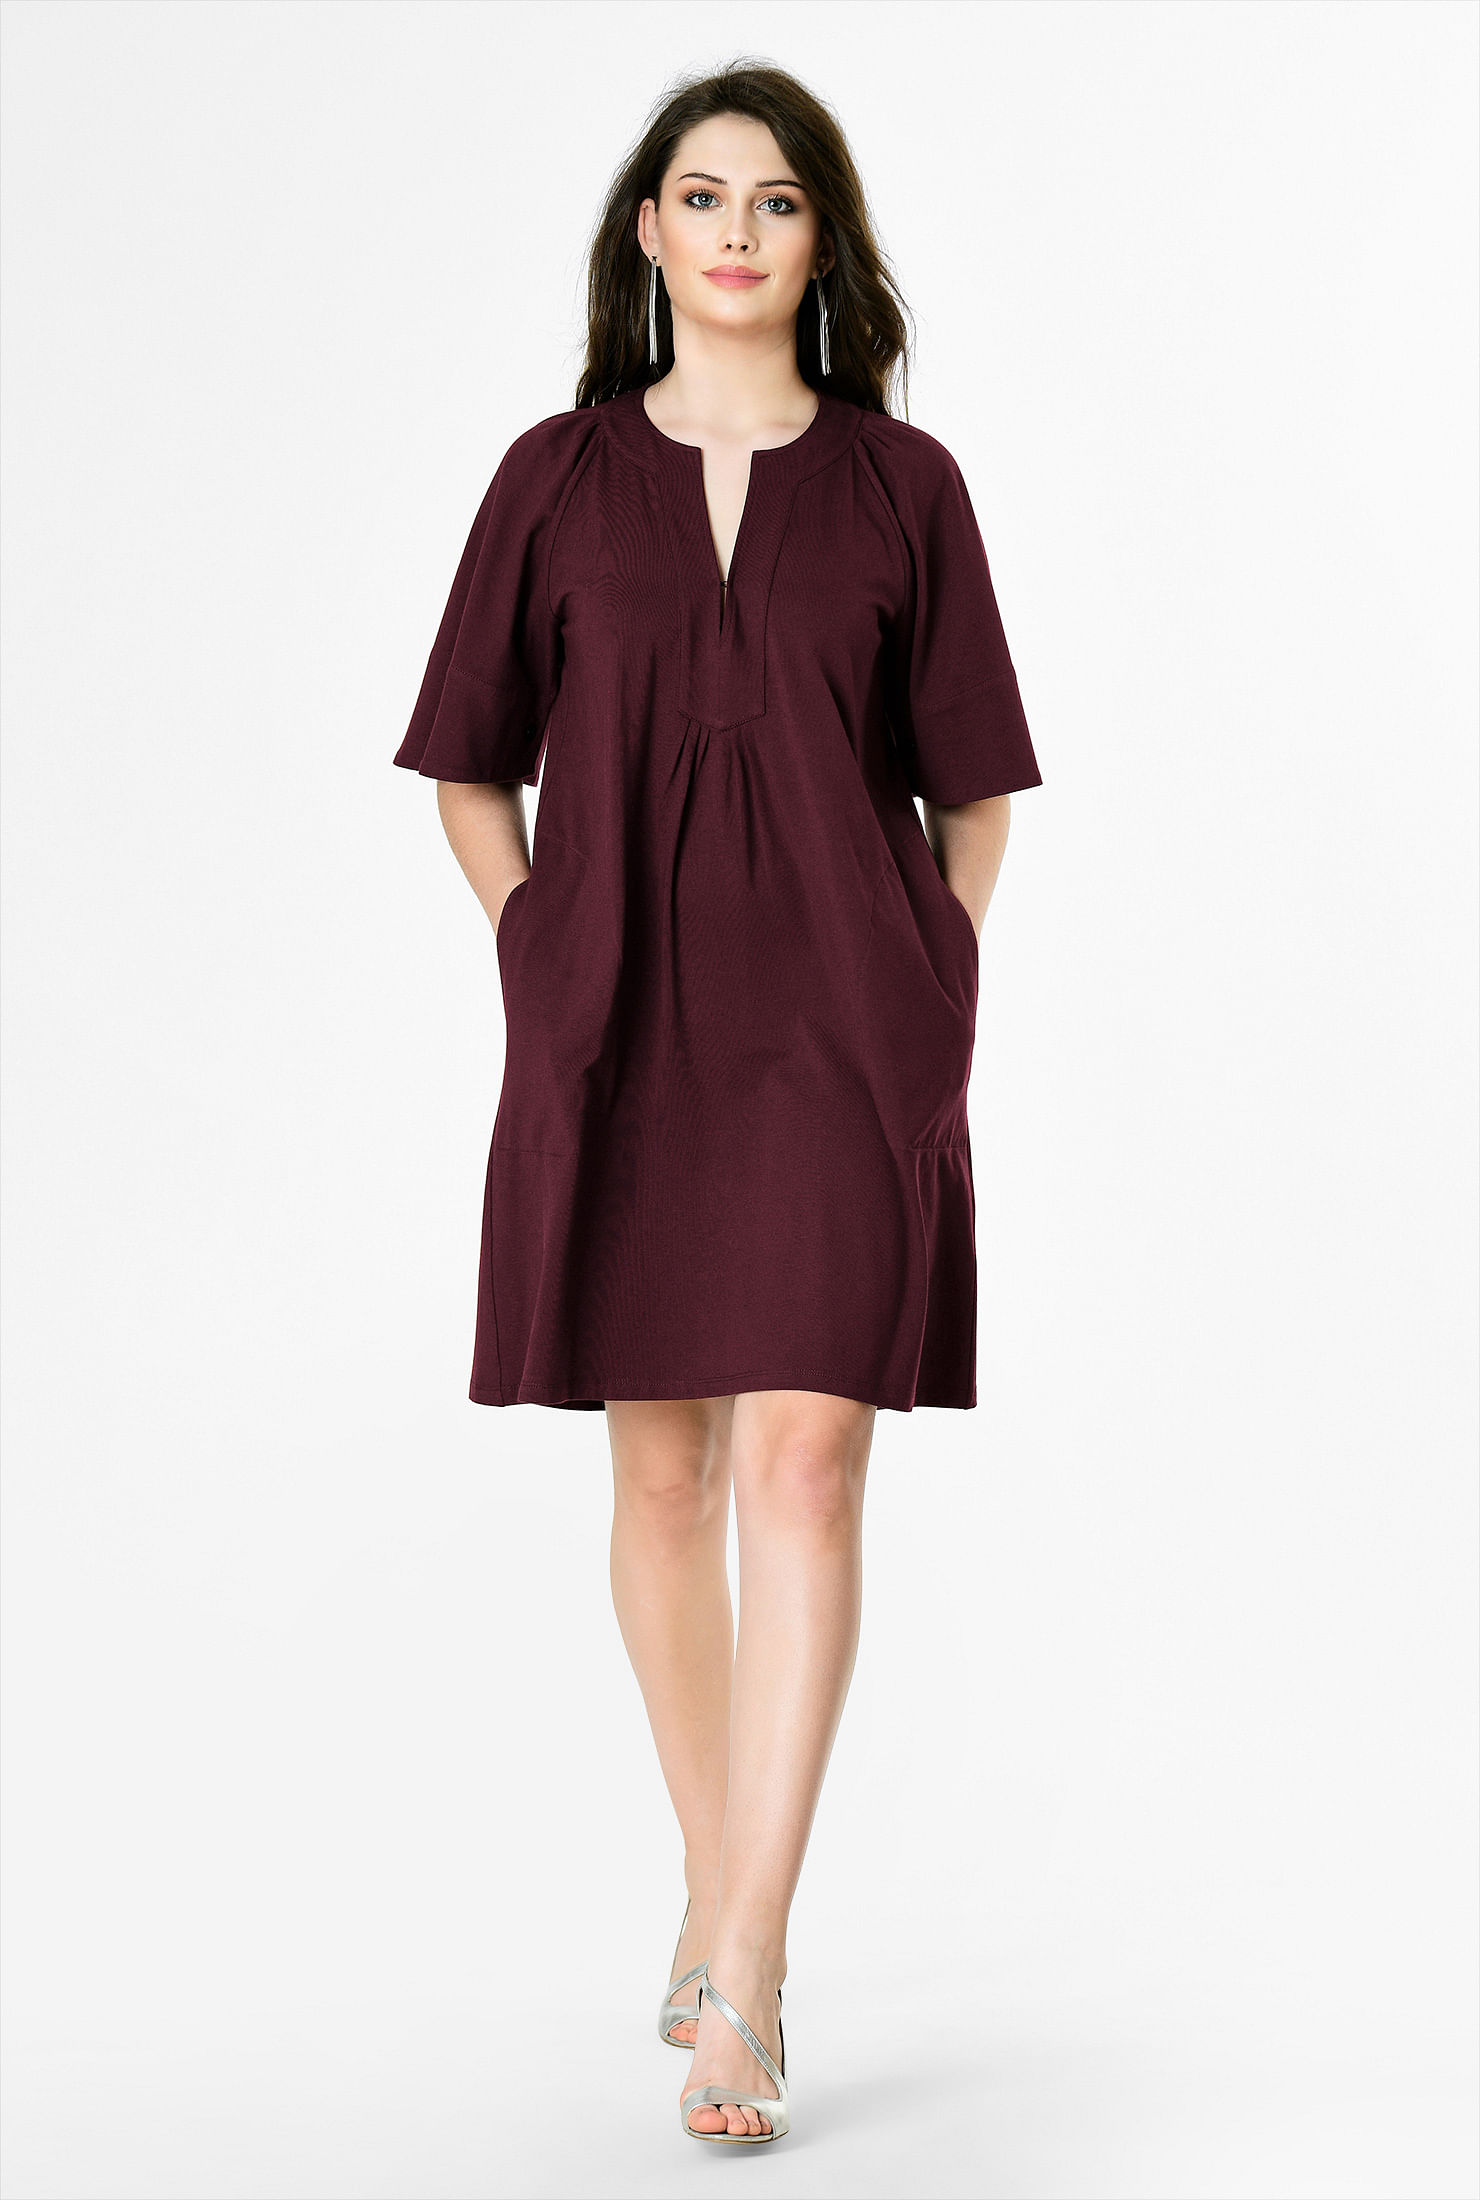 2413b1b2d9a ... Bell sleeve cotton knit tunic dress. , Above knee length dresses, Ancho  chile dresses, banded jewel neck dresses, cotton